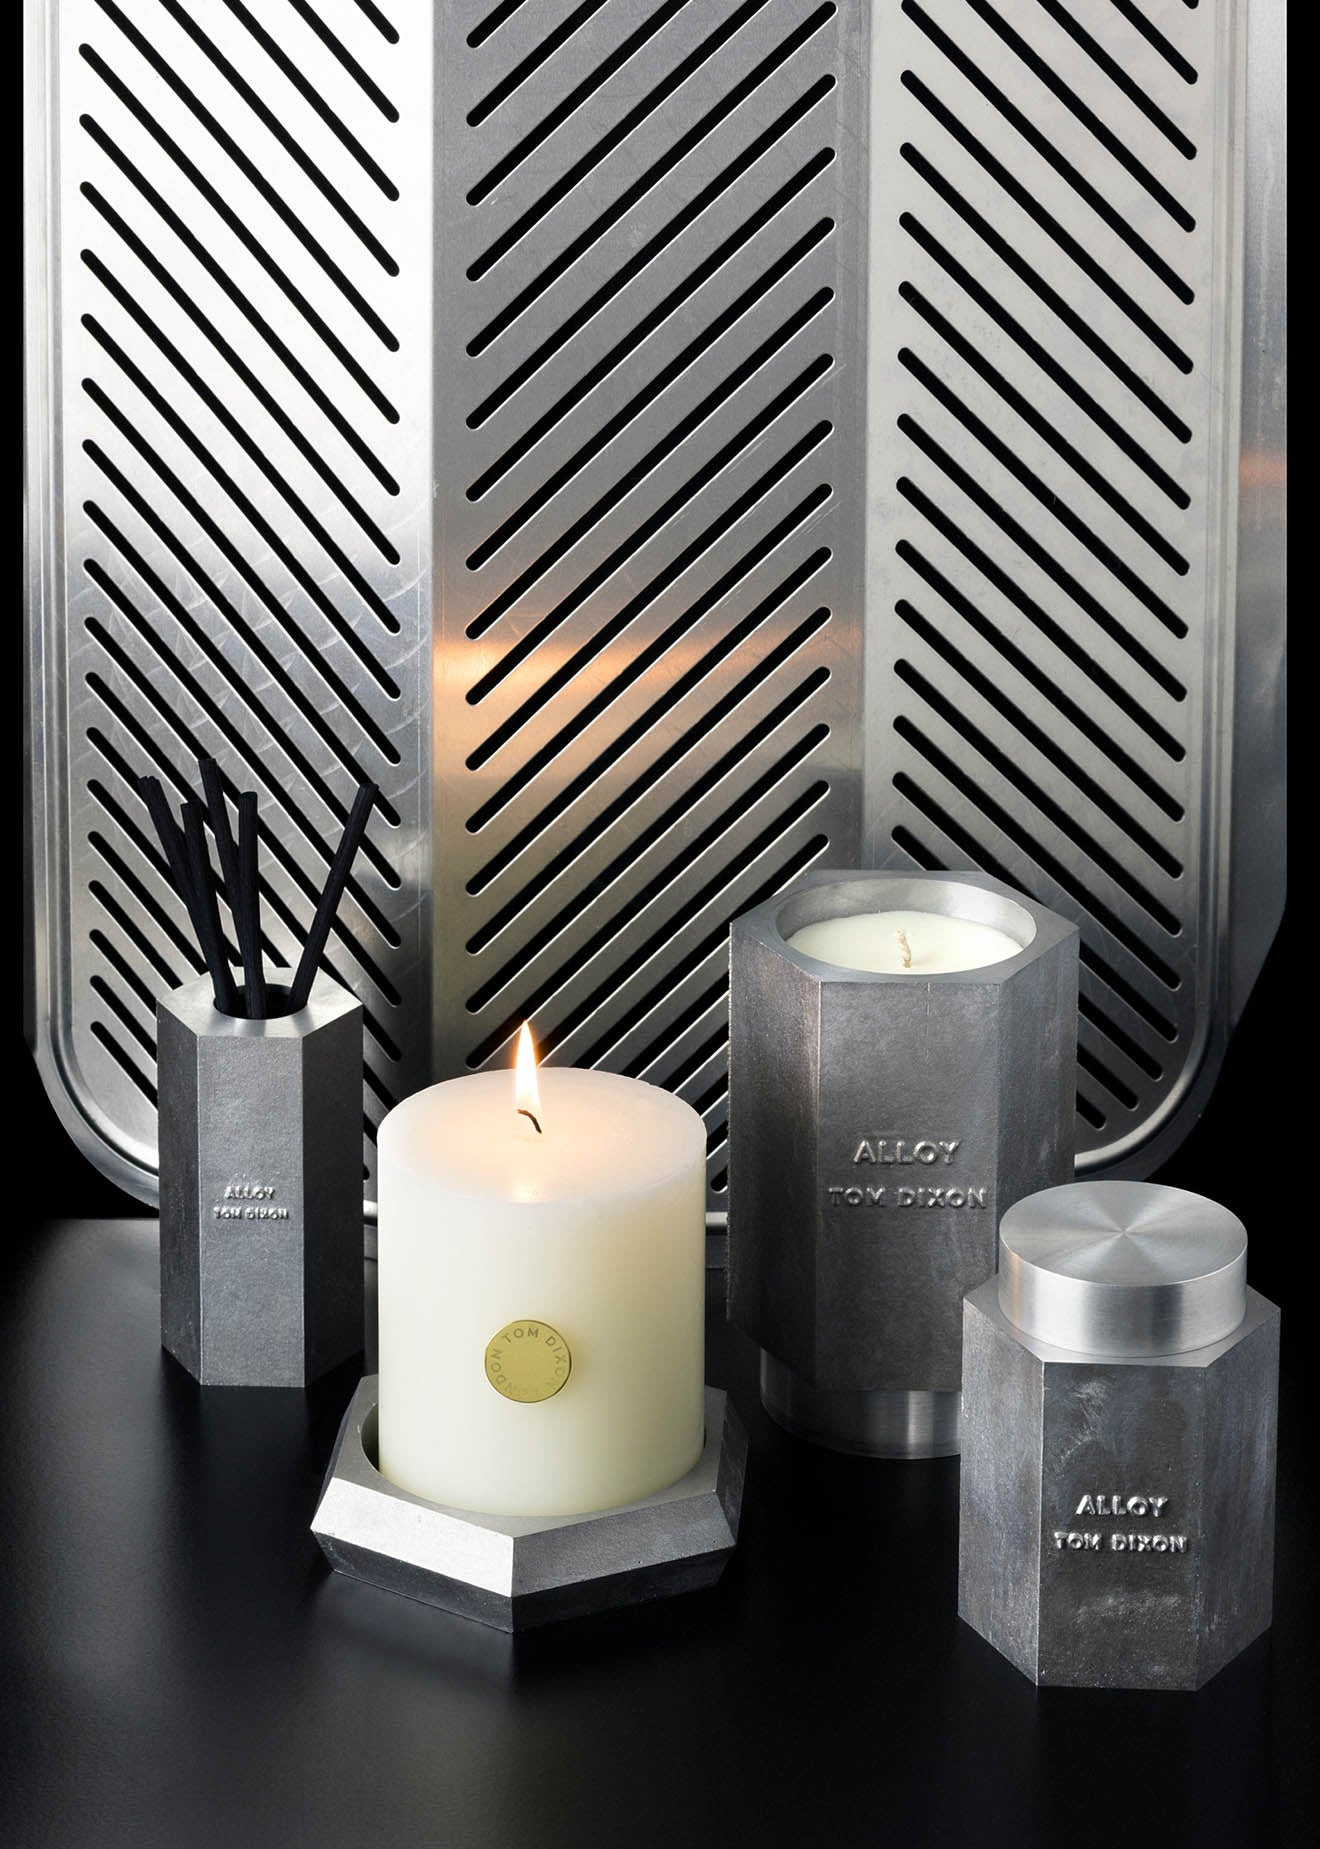 Tom Dixon Alloy collection of scents and candles